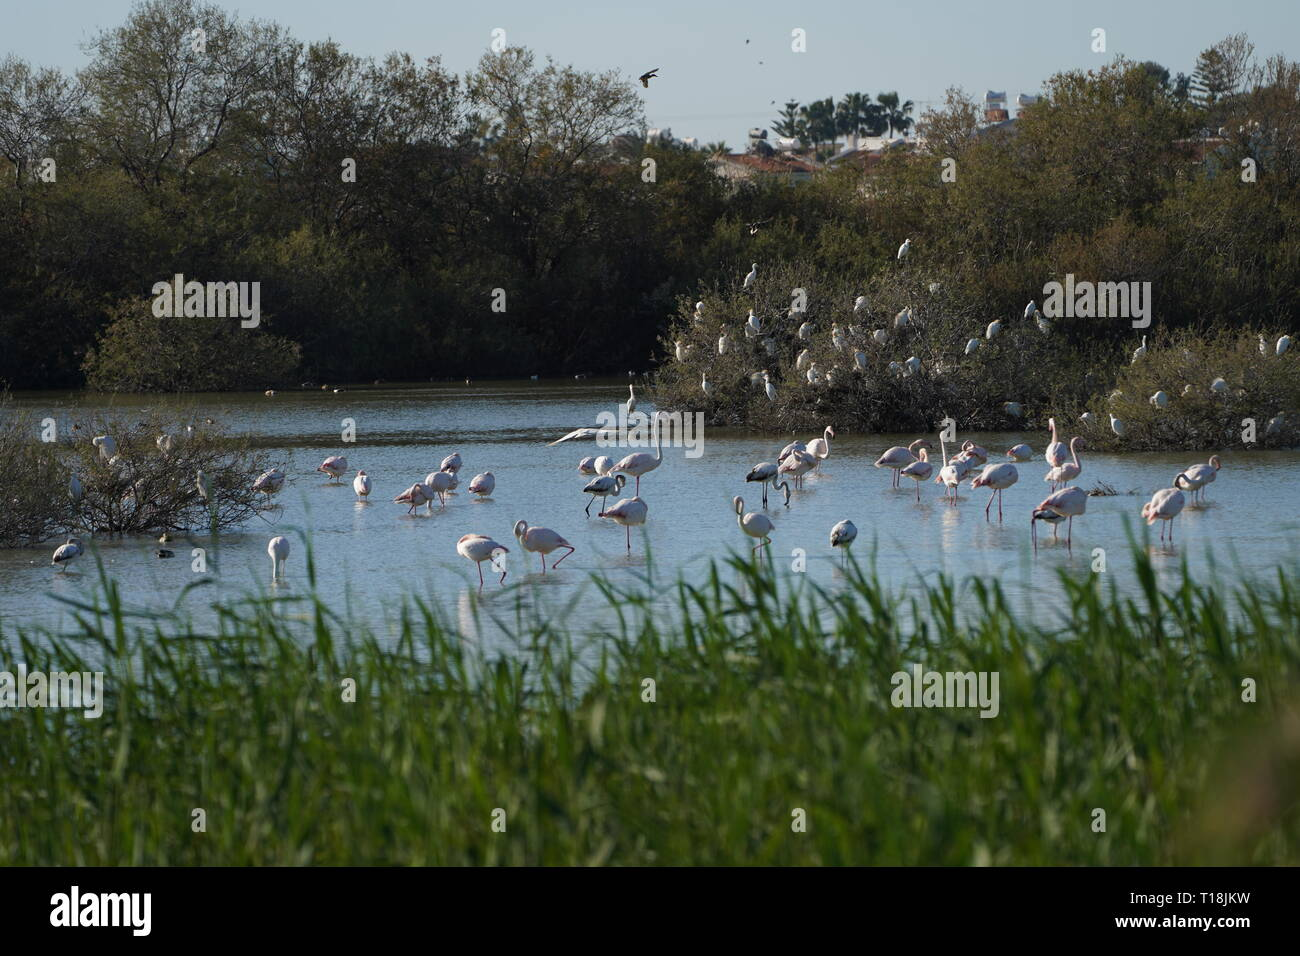 Pink flamingo use Cyprus as one of the important migratory passages. Among them are 12,000 flamingos (Phoenicopterus ruber) feeding on brine shrimp. Stock Photo